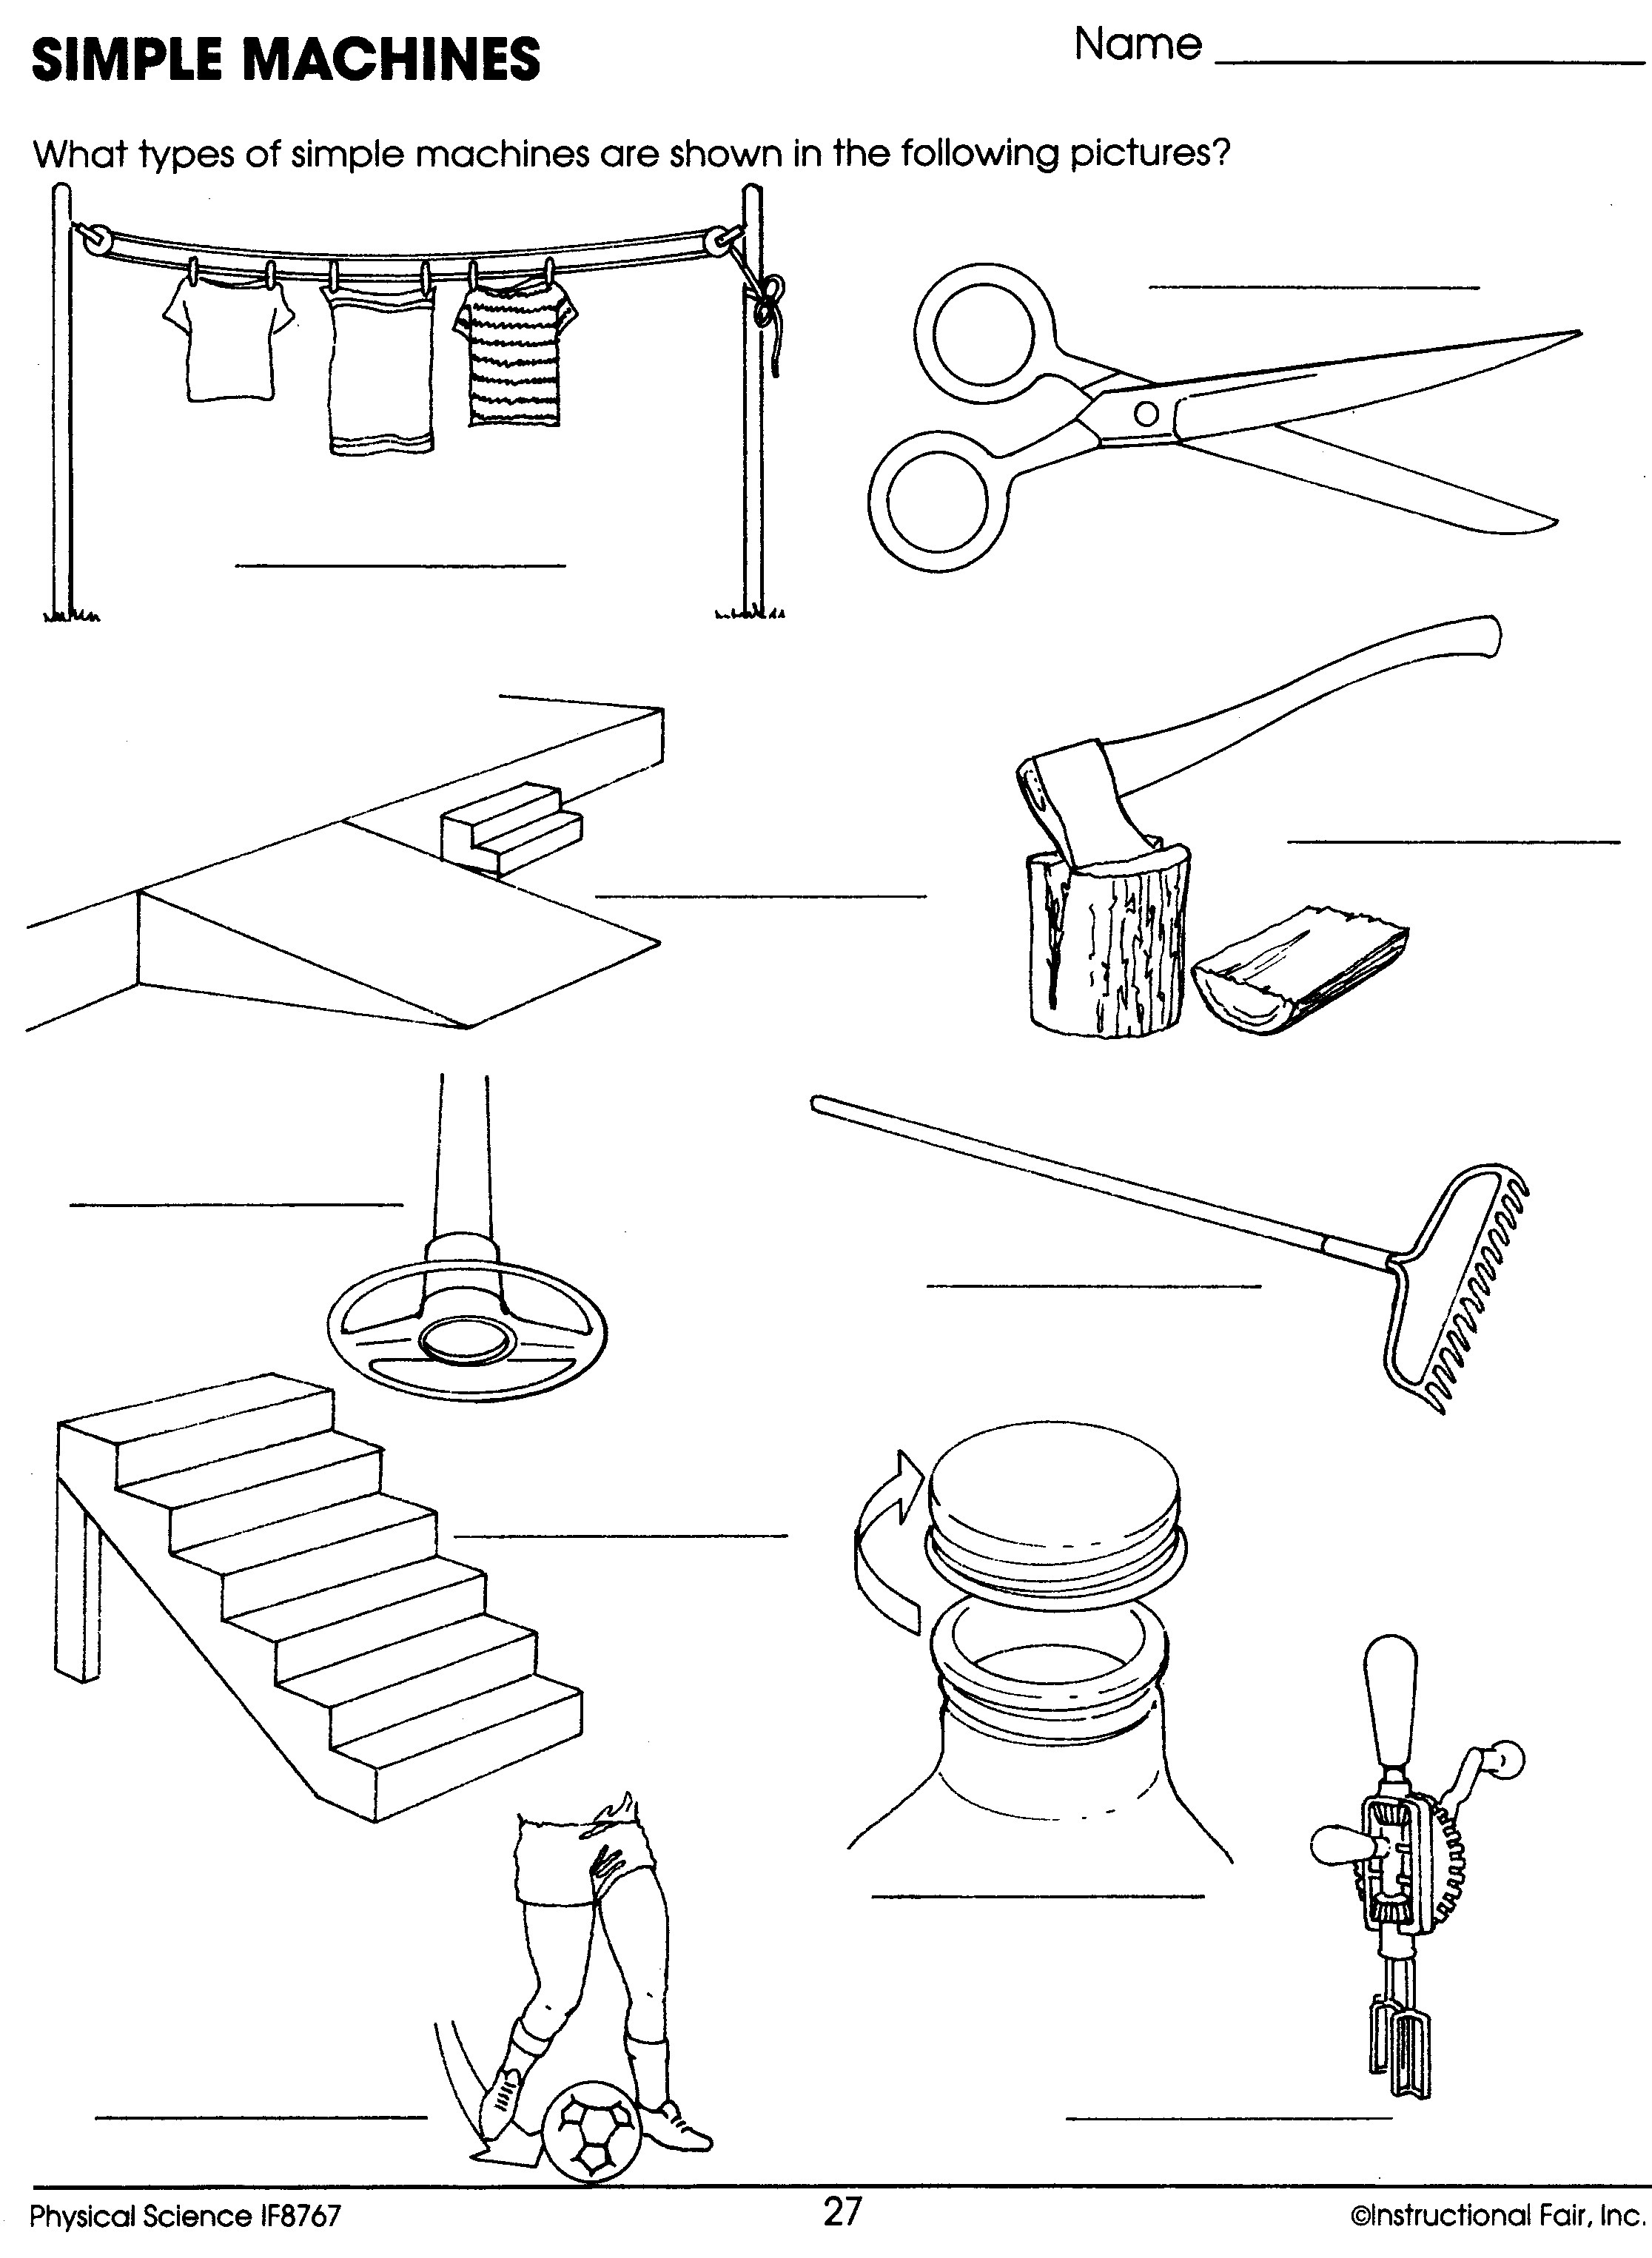 Simple Machines Worksheet